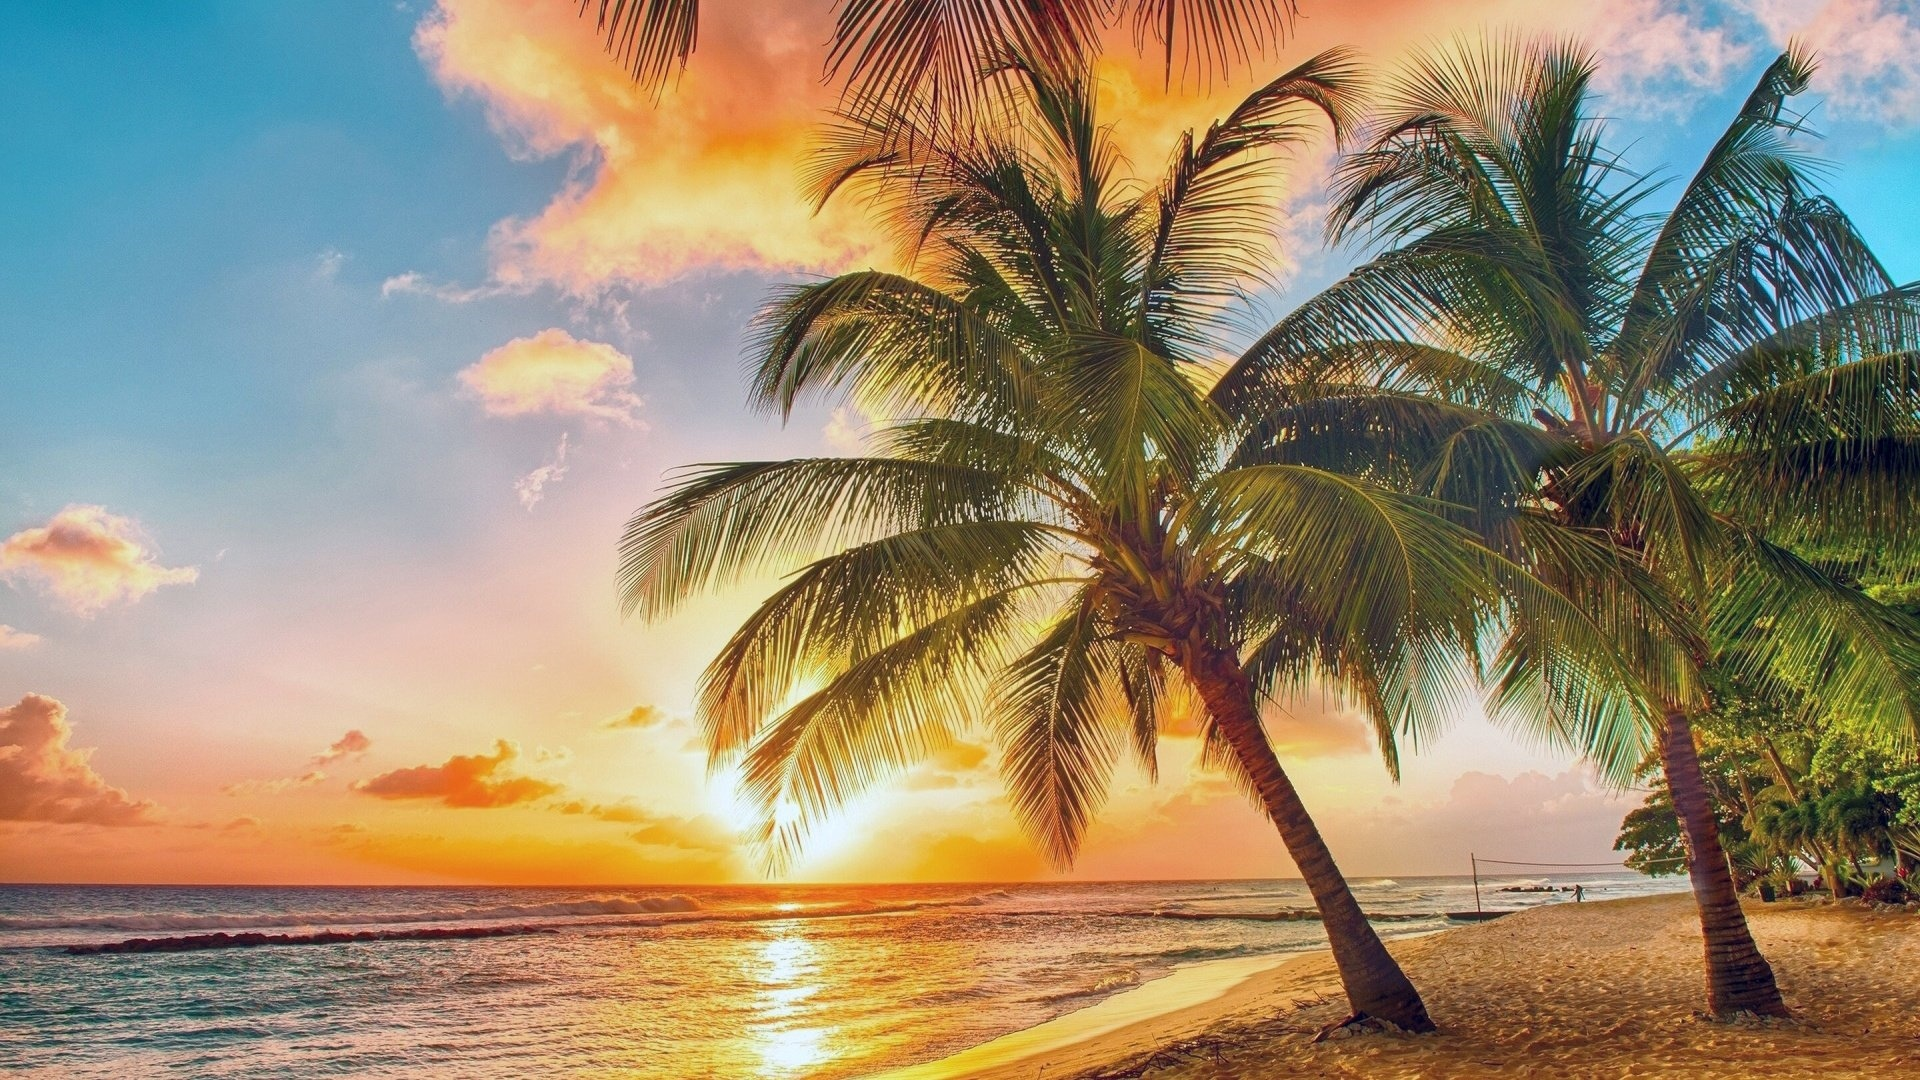 Paradise Wallpaper for pc